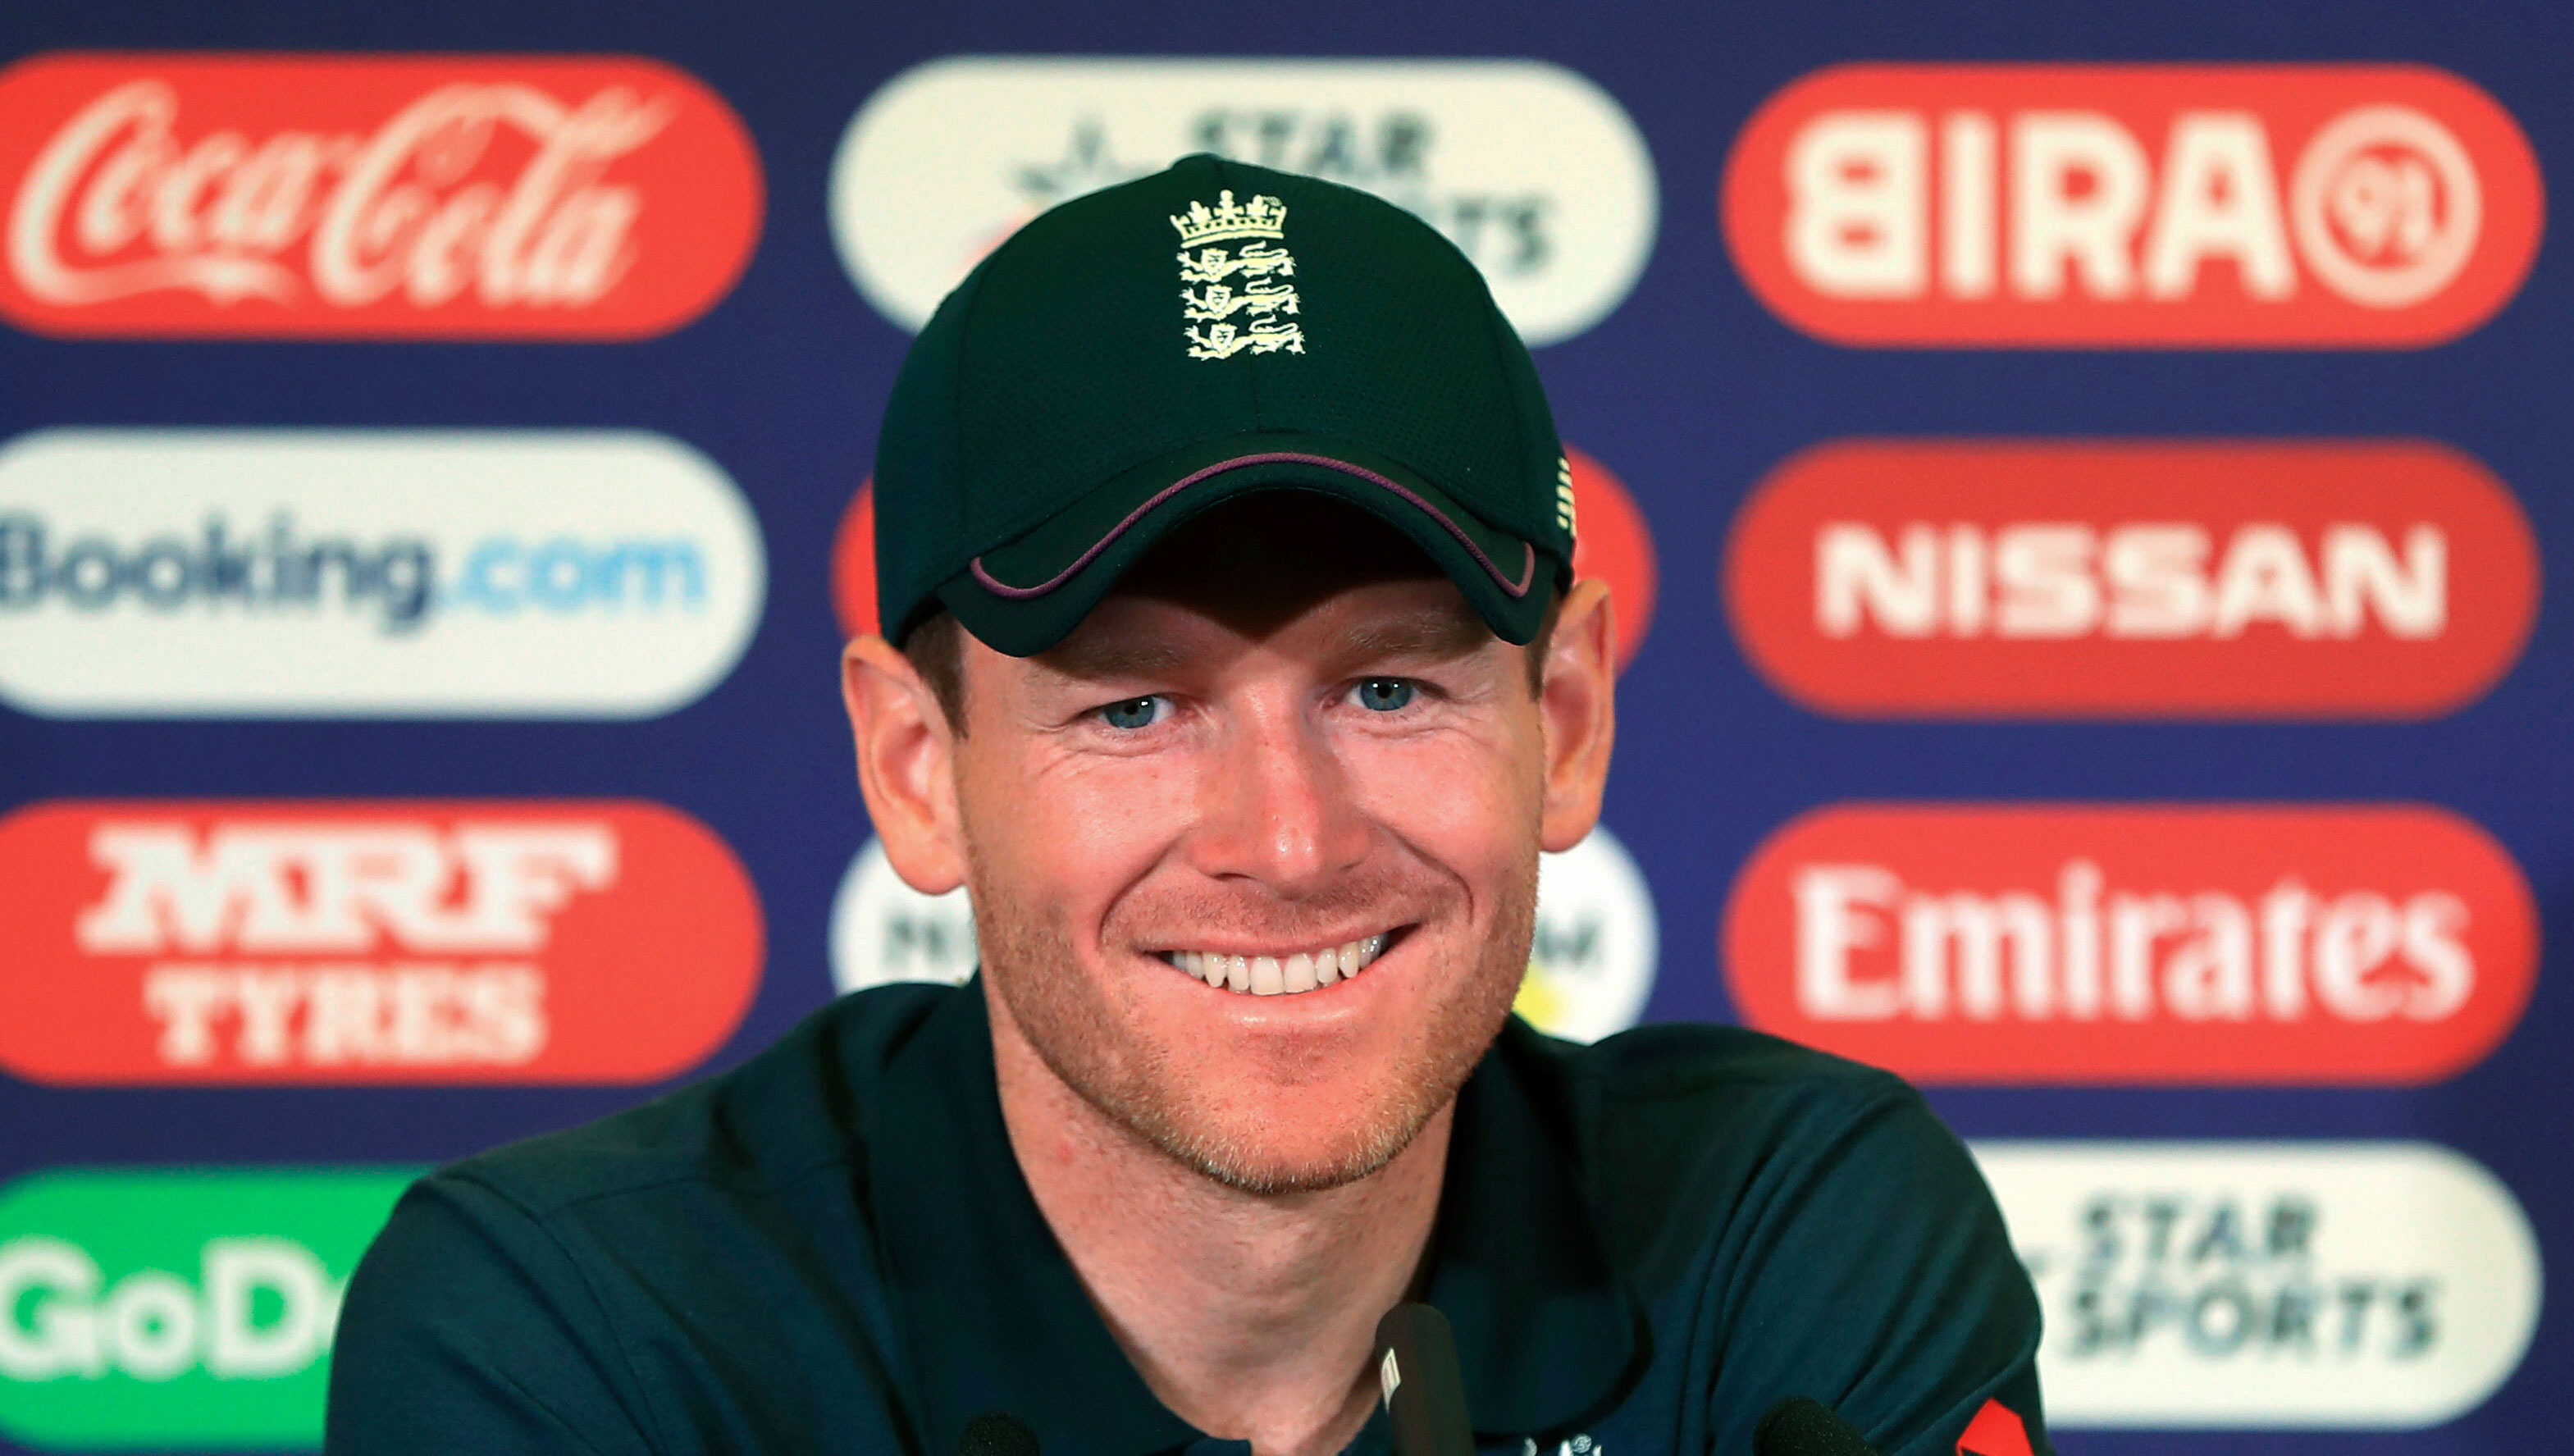 England captain Eoin Morgan during a press conference at Trent Bridge in Nottingham, England, on June 2, 2019.